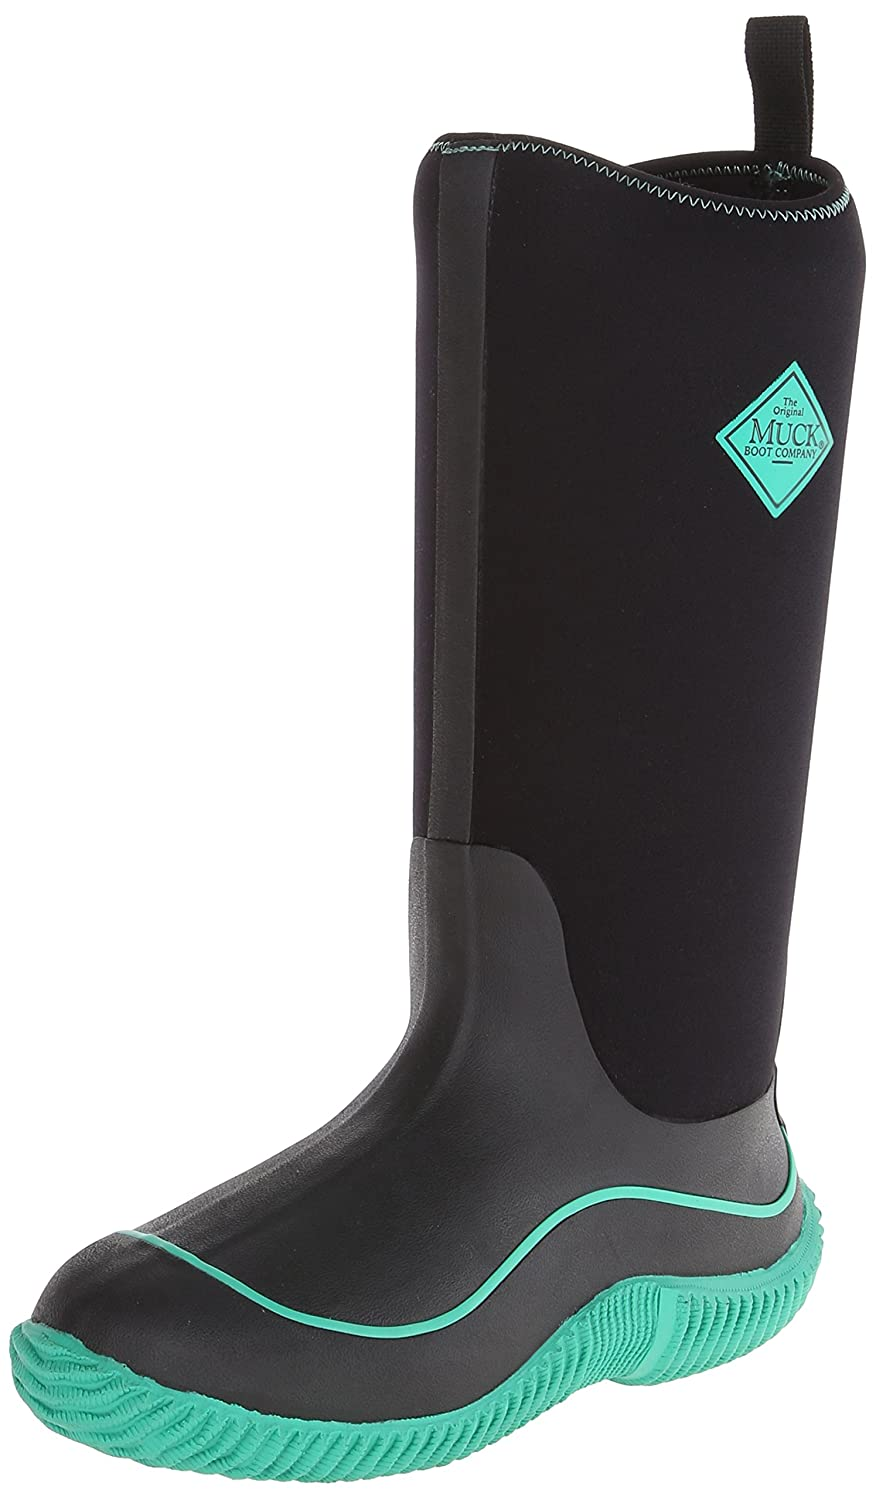 MuckBoots Women's Hale Plaid Boot B00IHW9Q08 5 B(M) US|Black/Jade